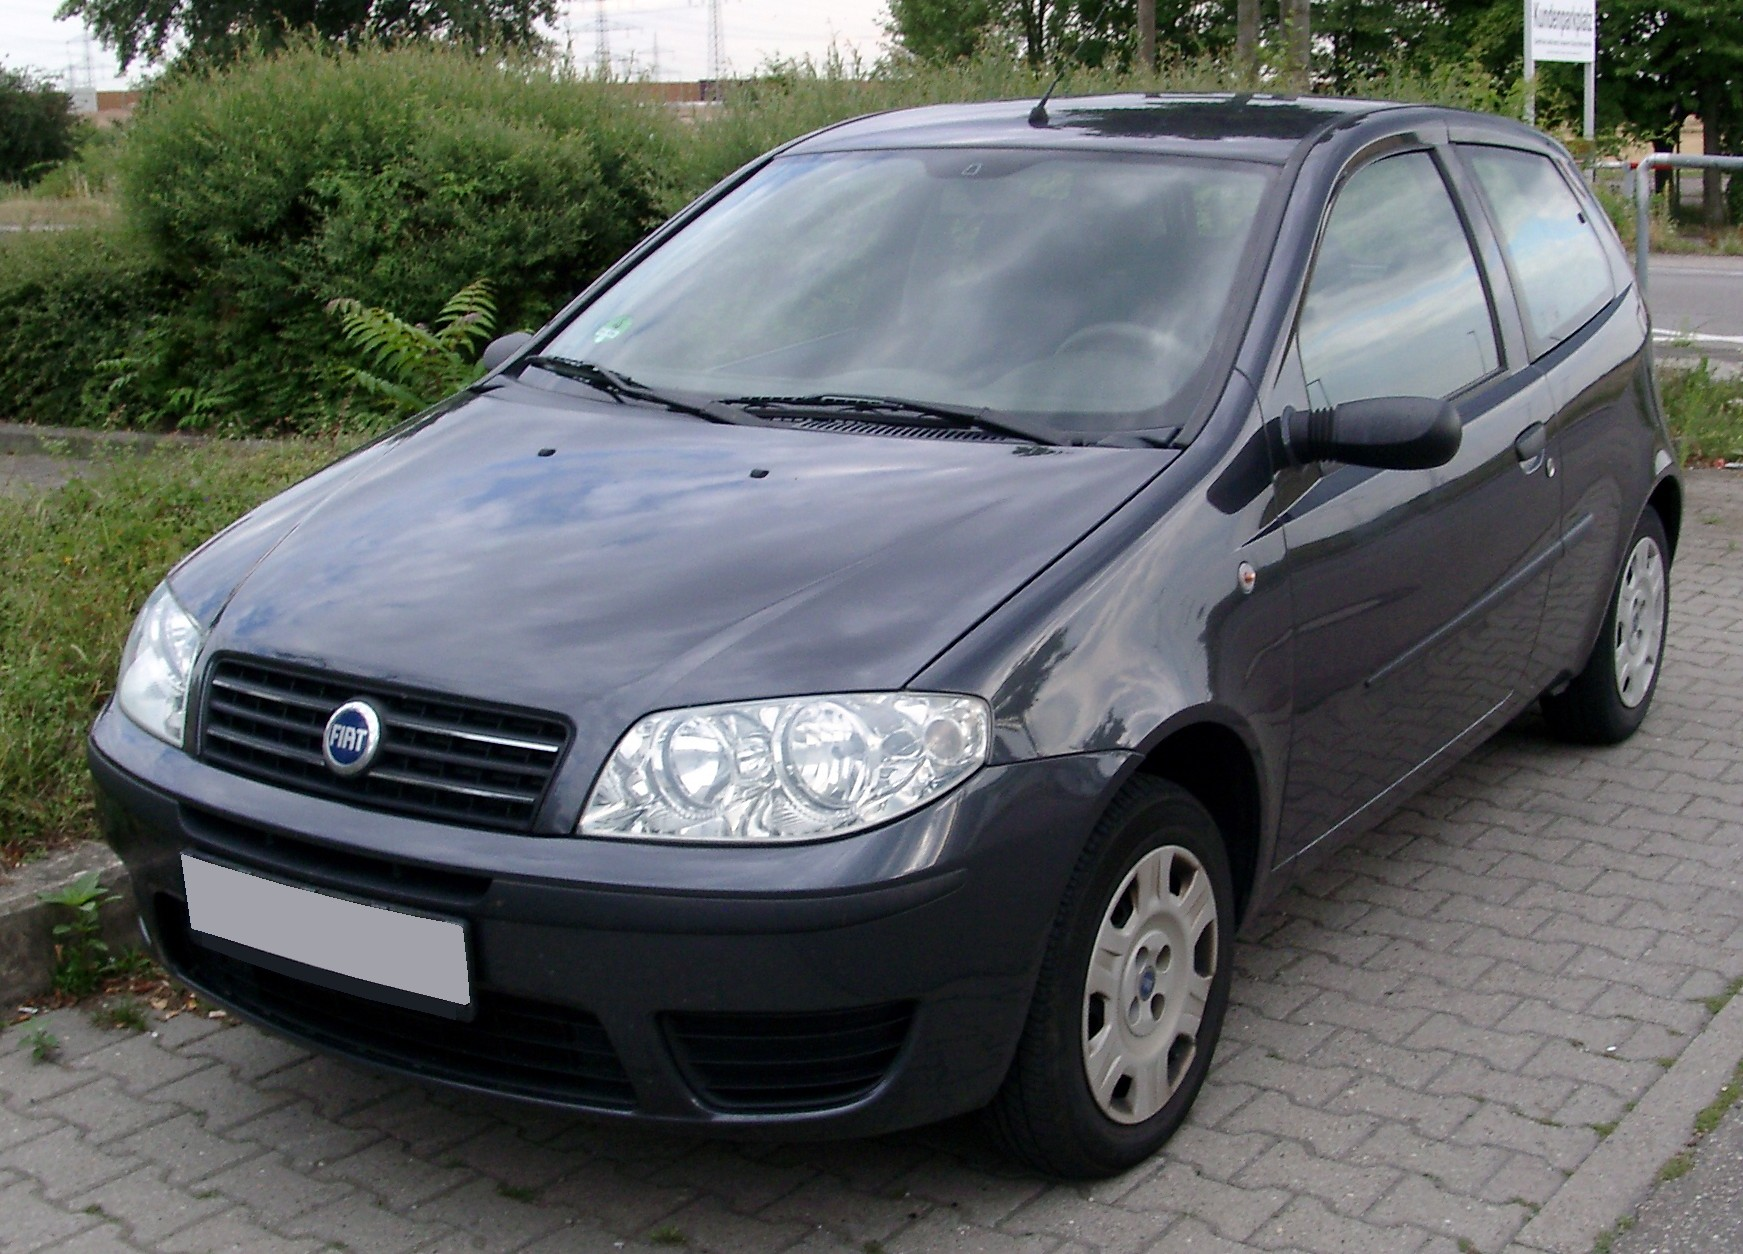 hight resolution of file fiat punto front 20080714 jpg